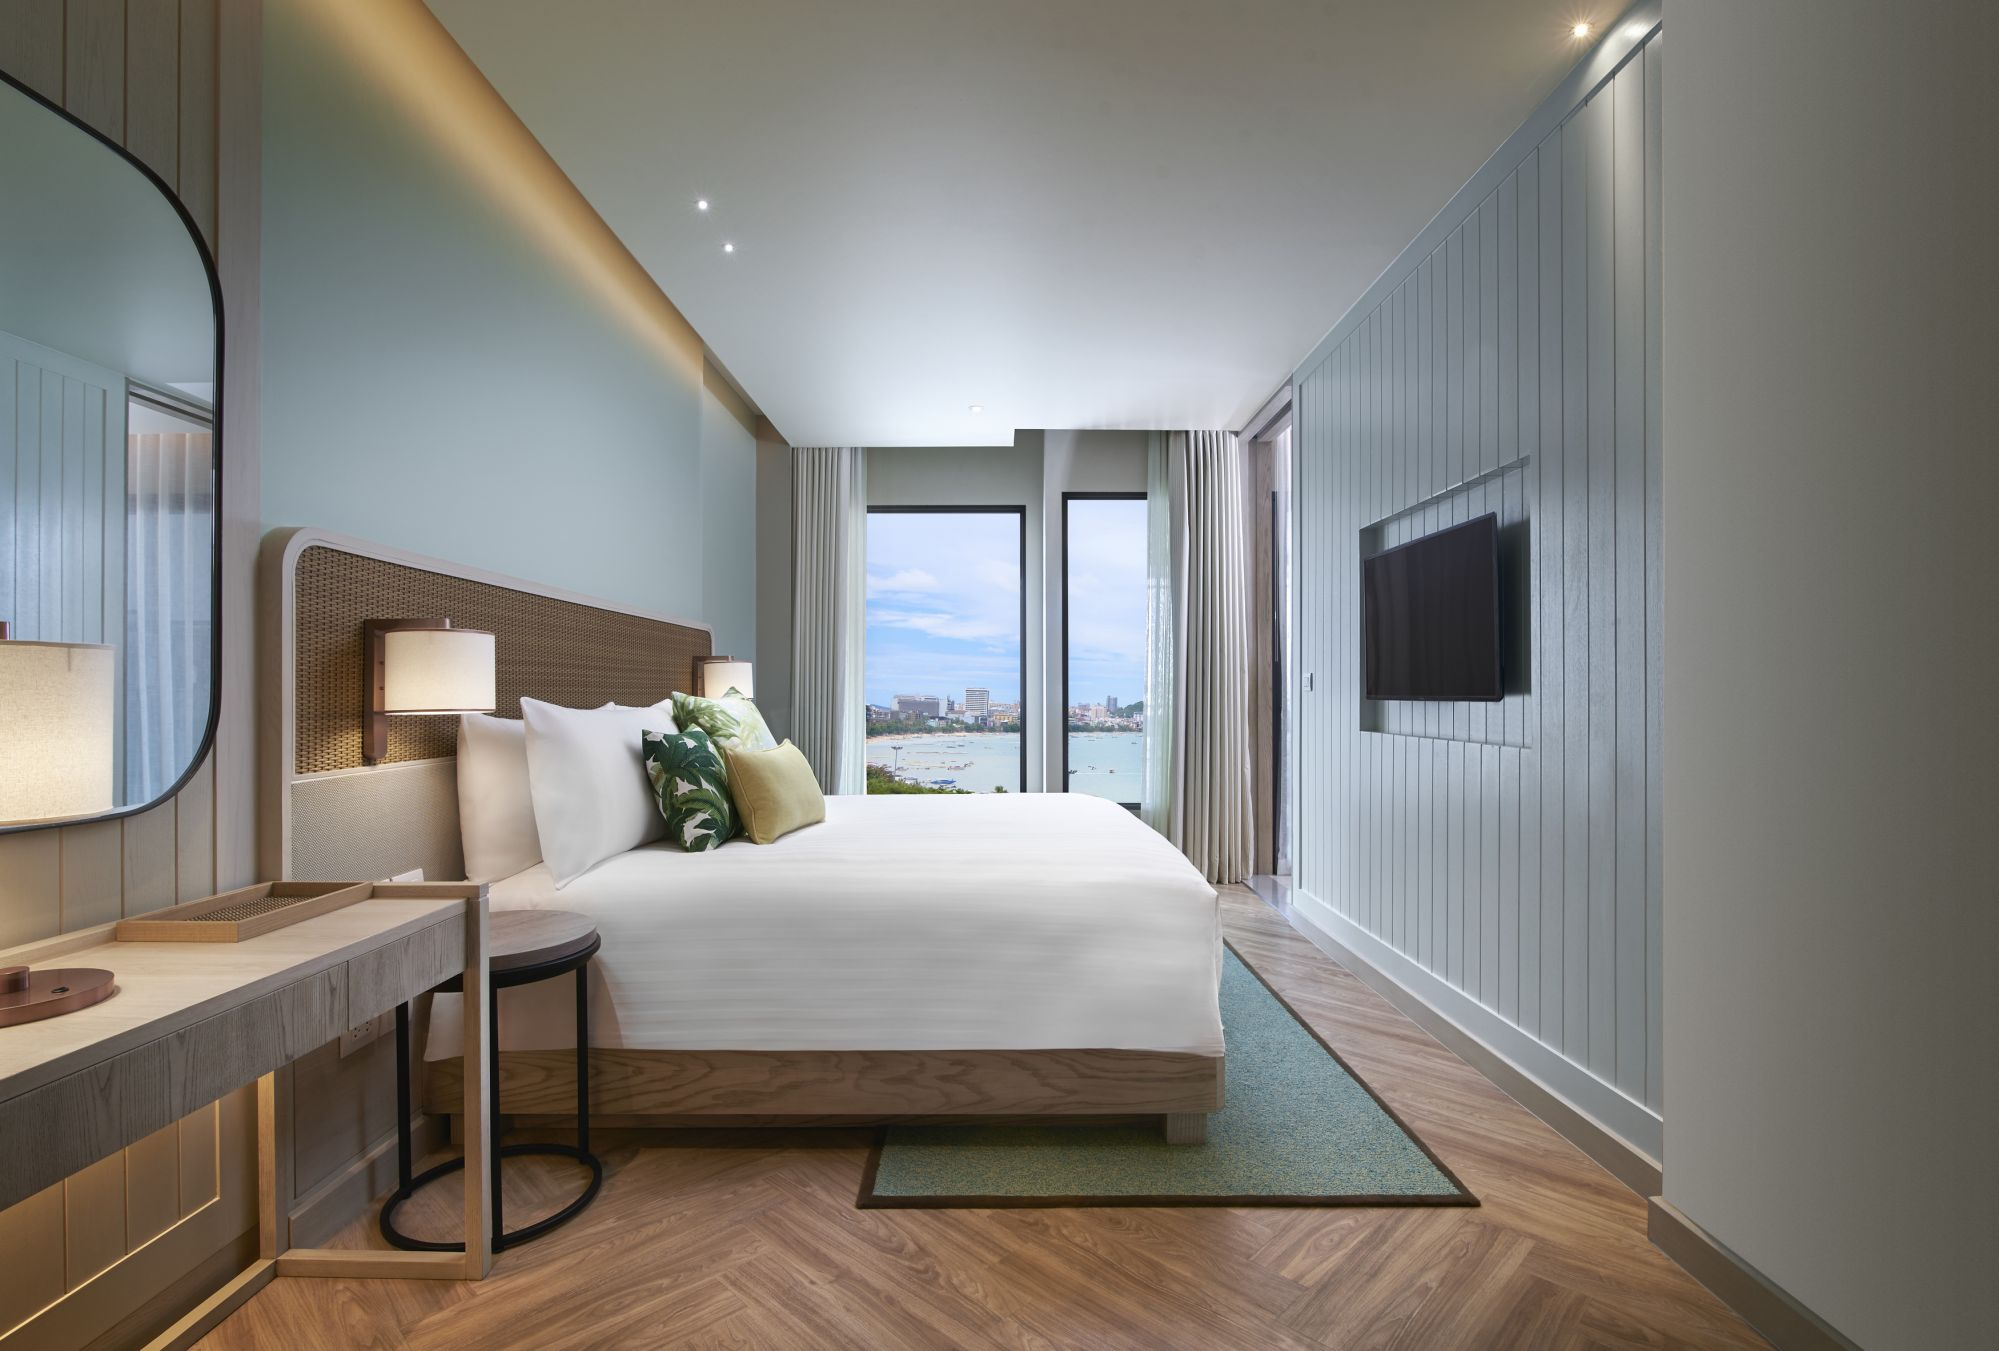 5 Tips From Amari To Turn Your Home Into A Staycation Resort